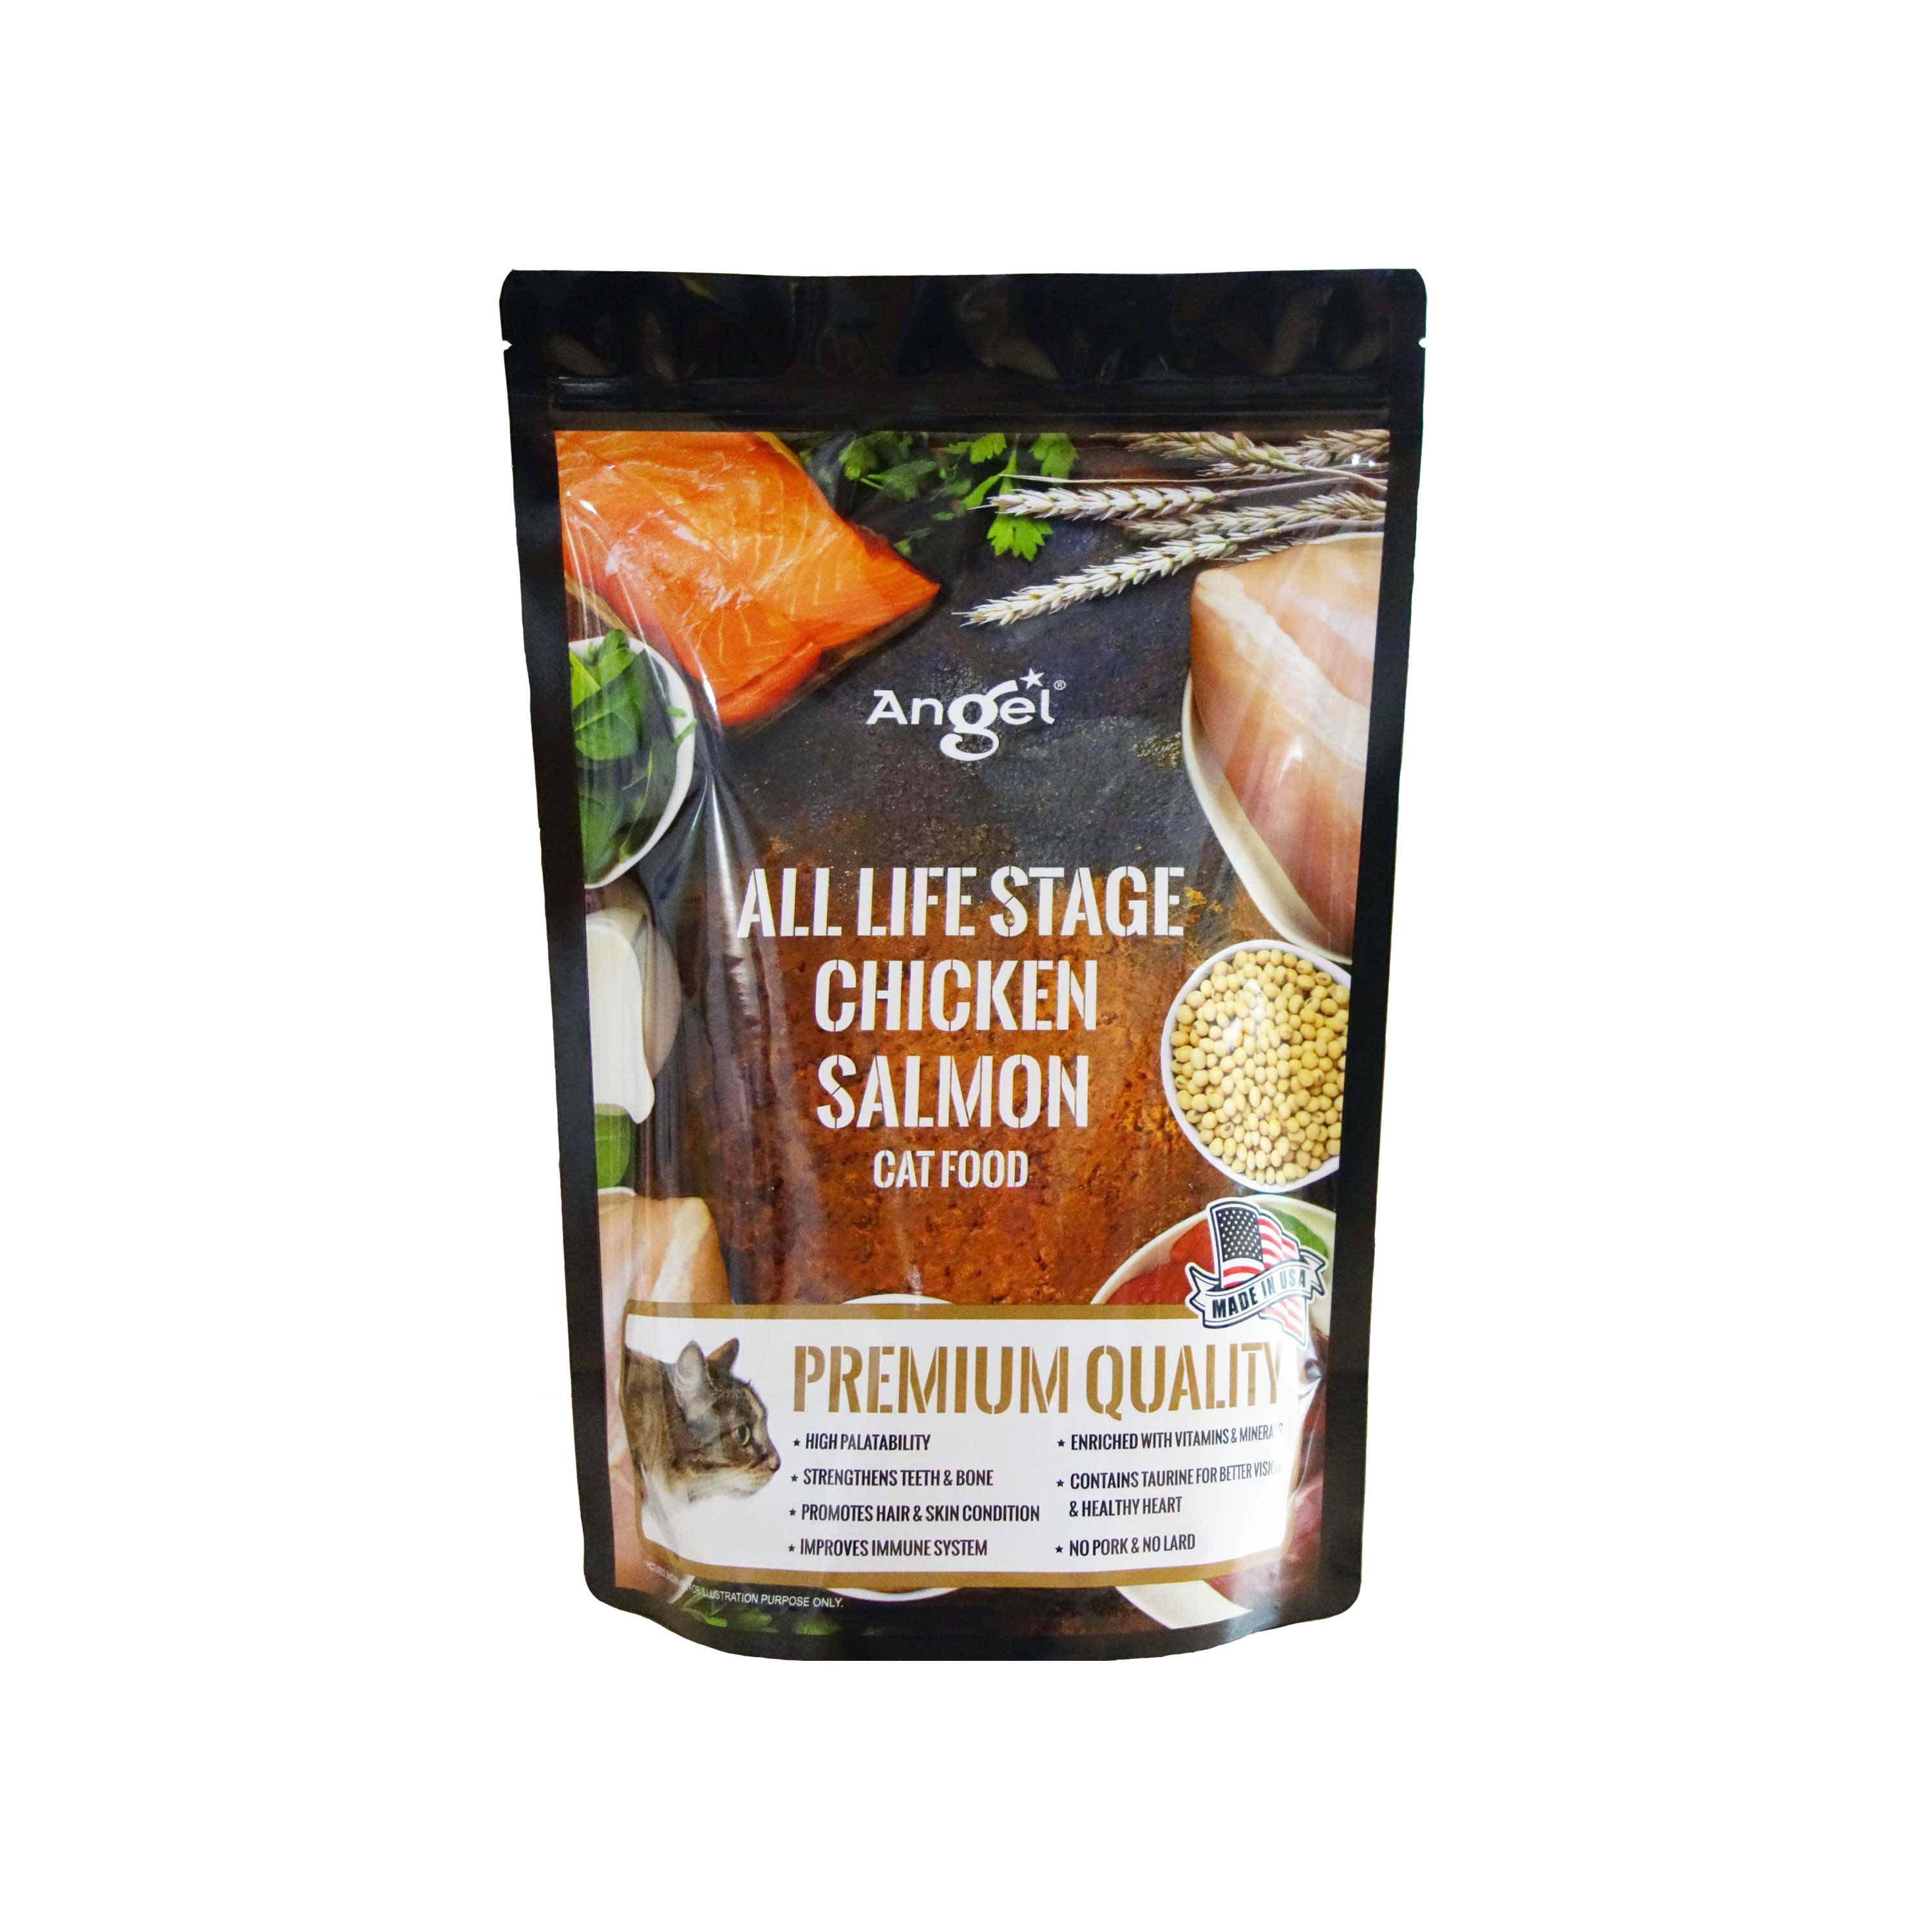 Pethouse Singapore Angel All Life Stage Chicken Salmon